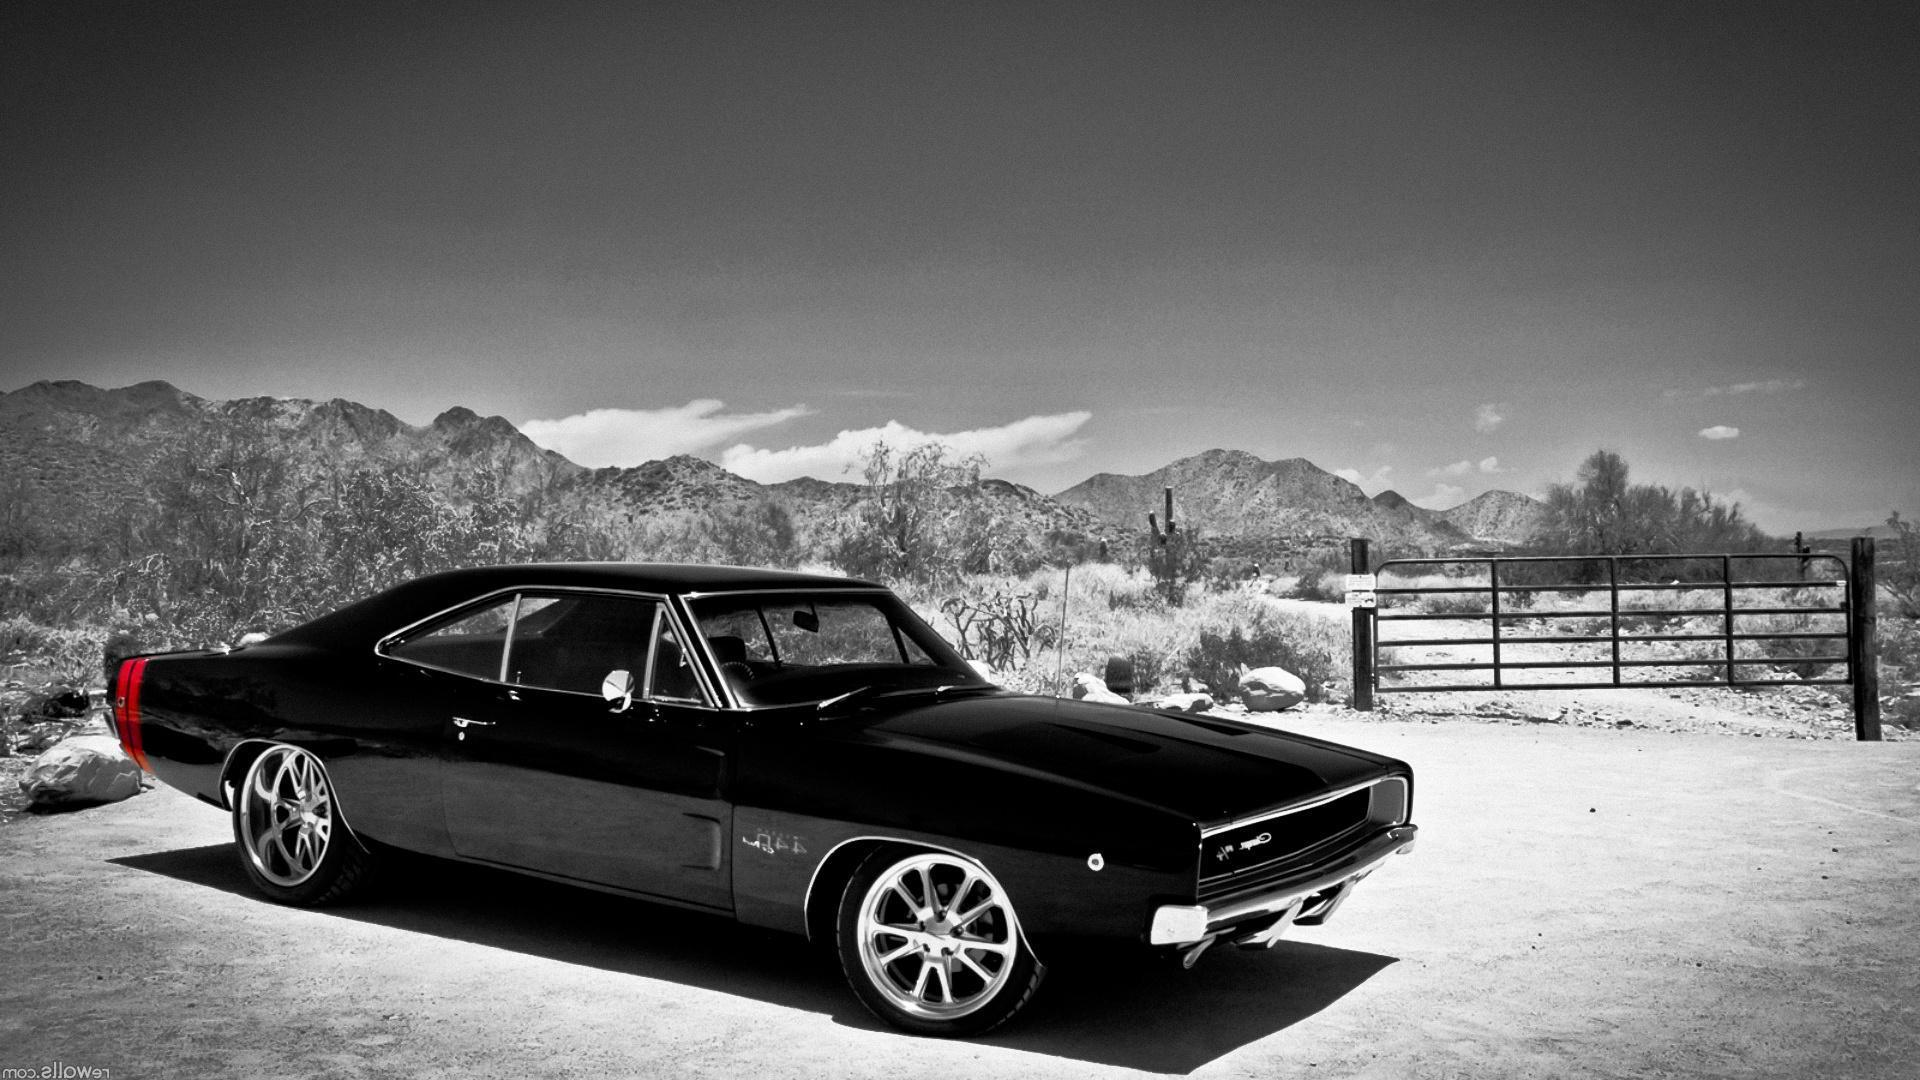 dodge charger 1970 wallpapers wallpaper cave. Black Bedroom Furniture Sets. Home Design Ideas